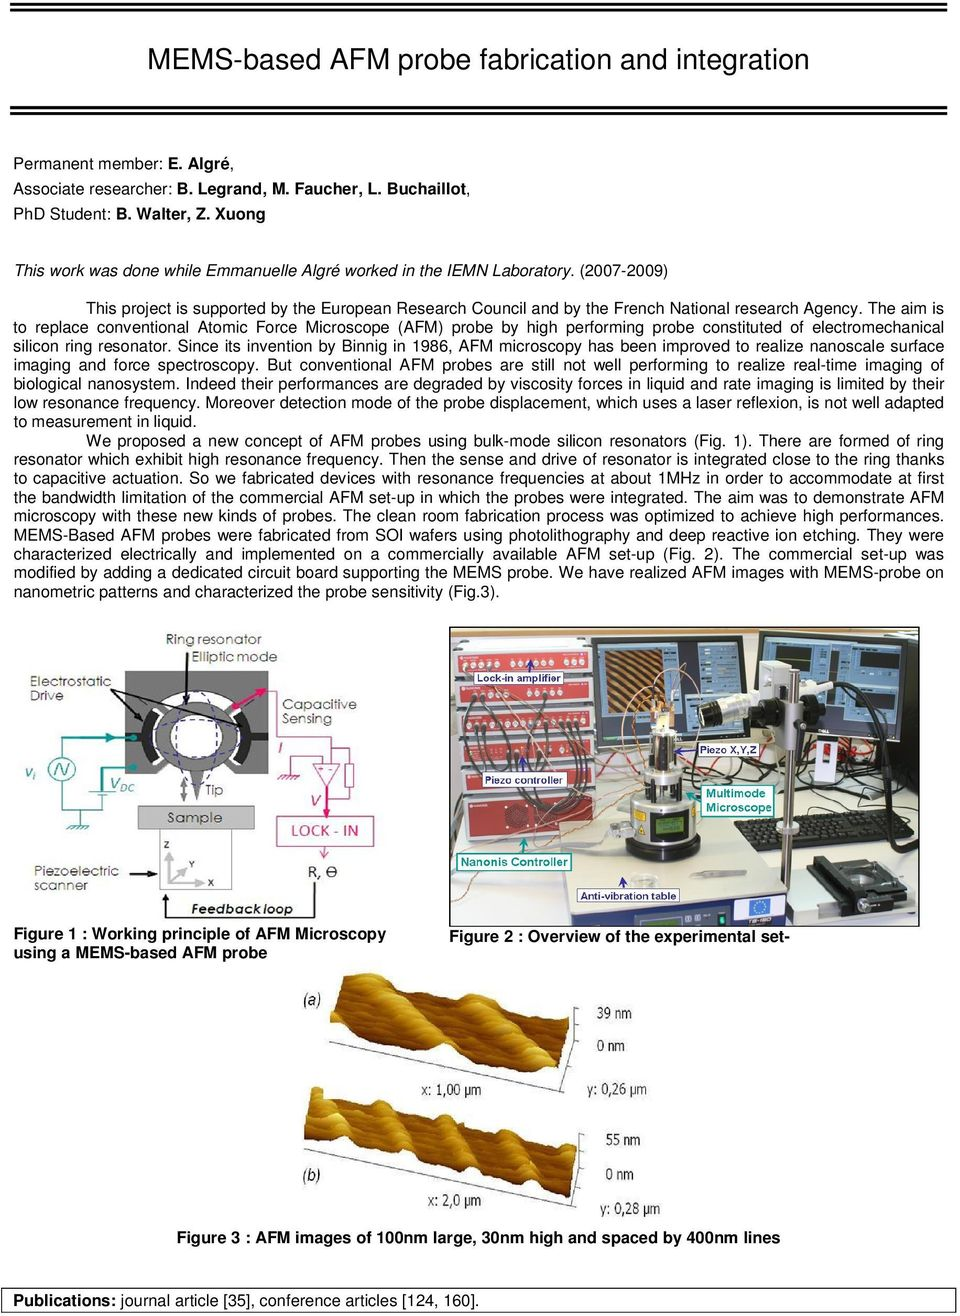 The aim is to replace conventional Atomic Force Microscope (AFM) probe by high performing probe constituted of electromechanical silicon ring resonator.